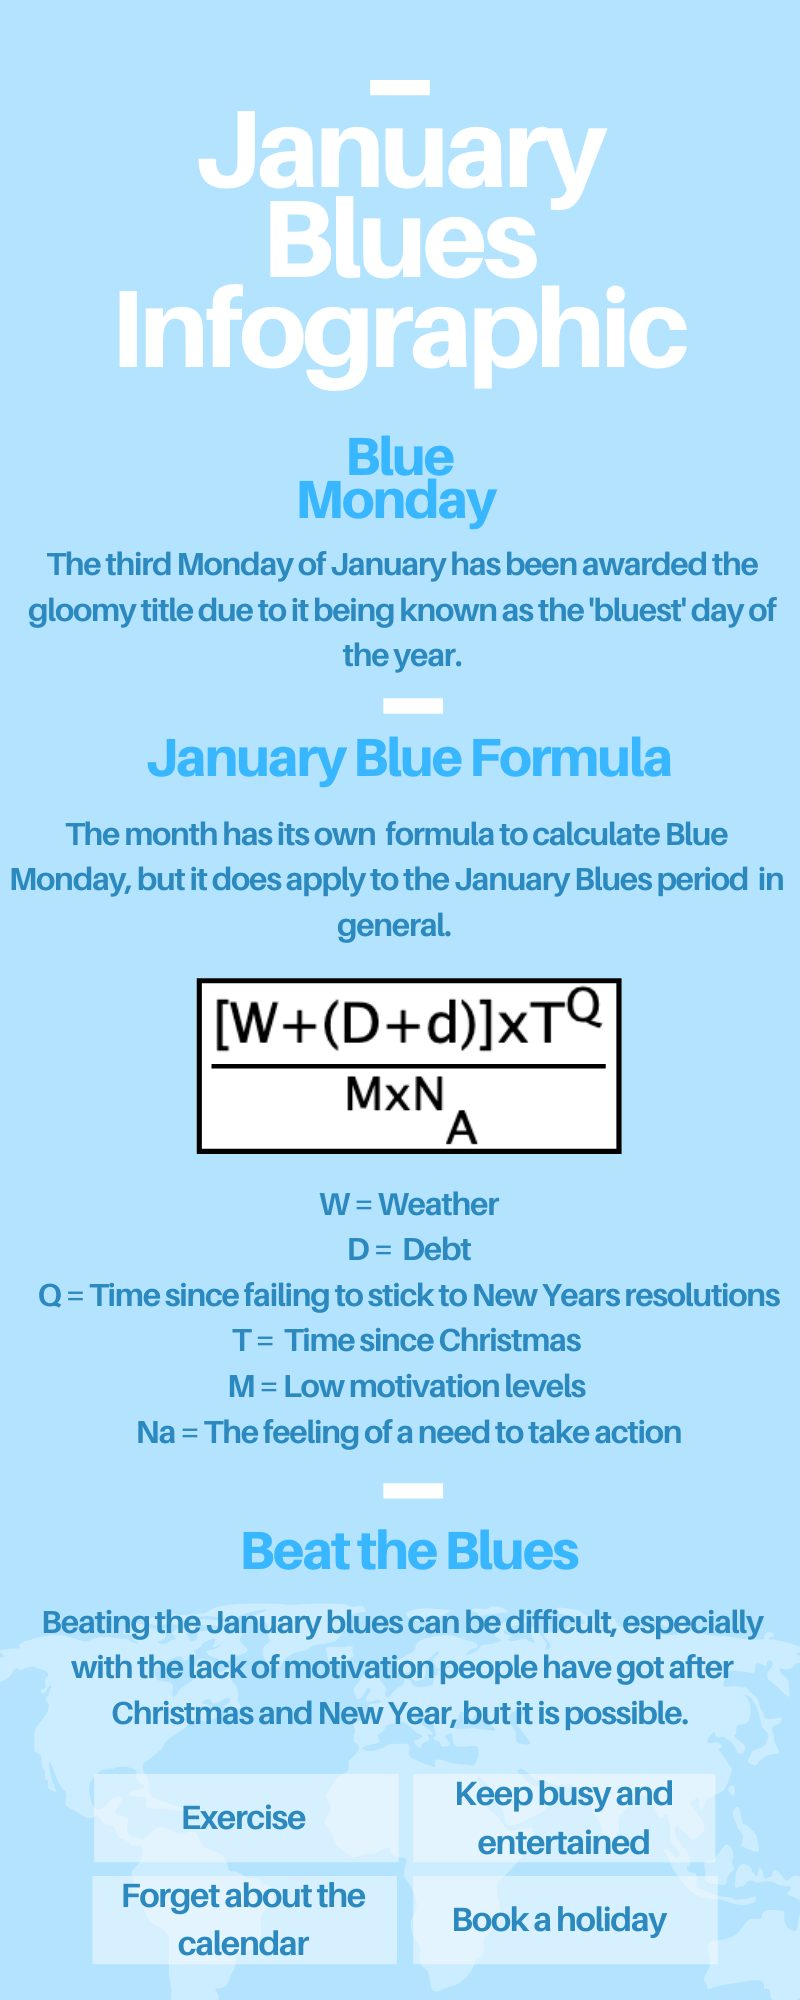 january blues | best the blues infographic